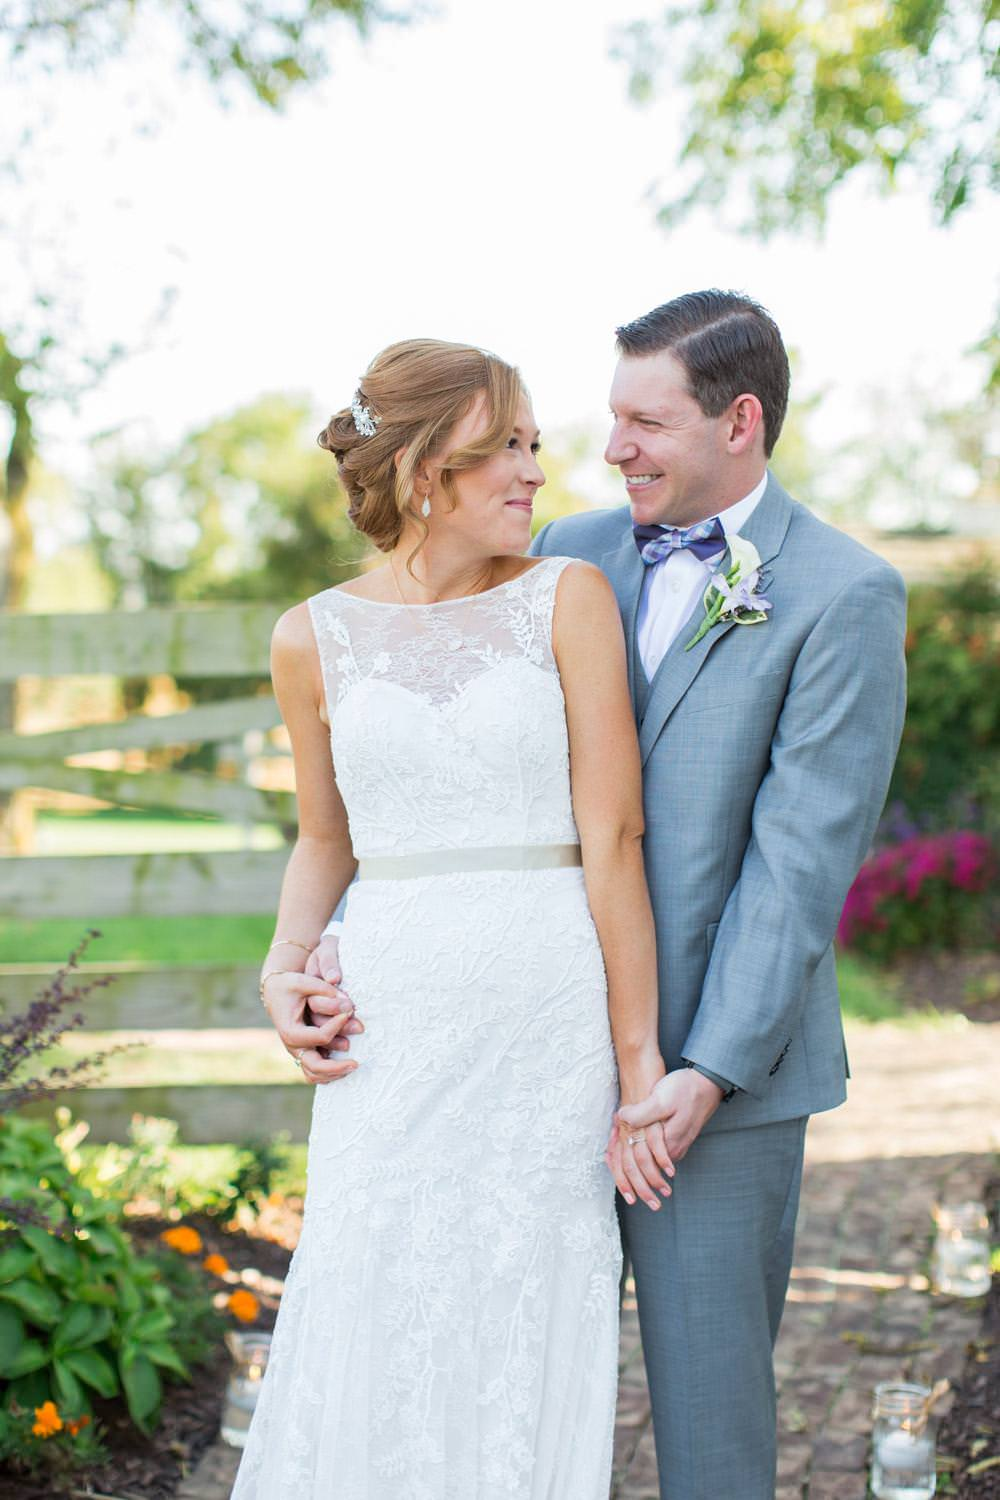 Beautiful candid and sweet first look with the bride and groom for a Maryland wedding, Cavin Elizabeth Photography